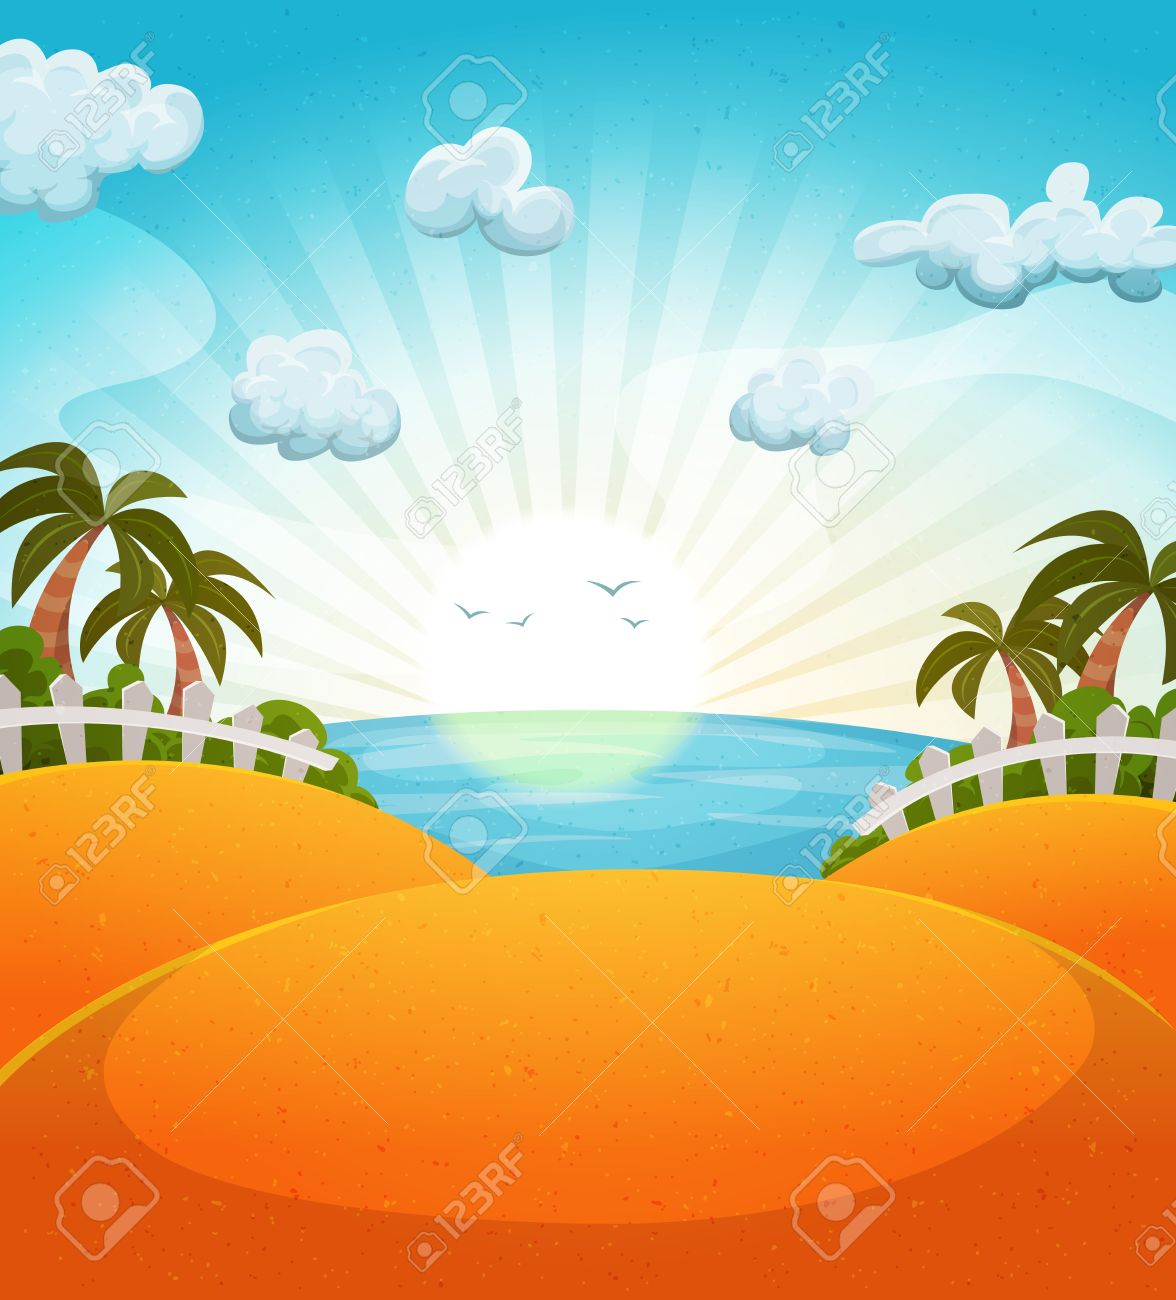 Illustration Of A Cartoon Summer Ocean Beach Landscape With Palm Trees And Sun Shining Stock Vector